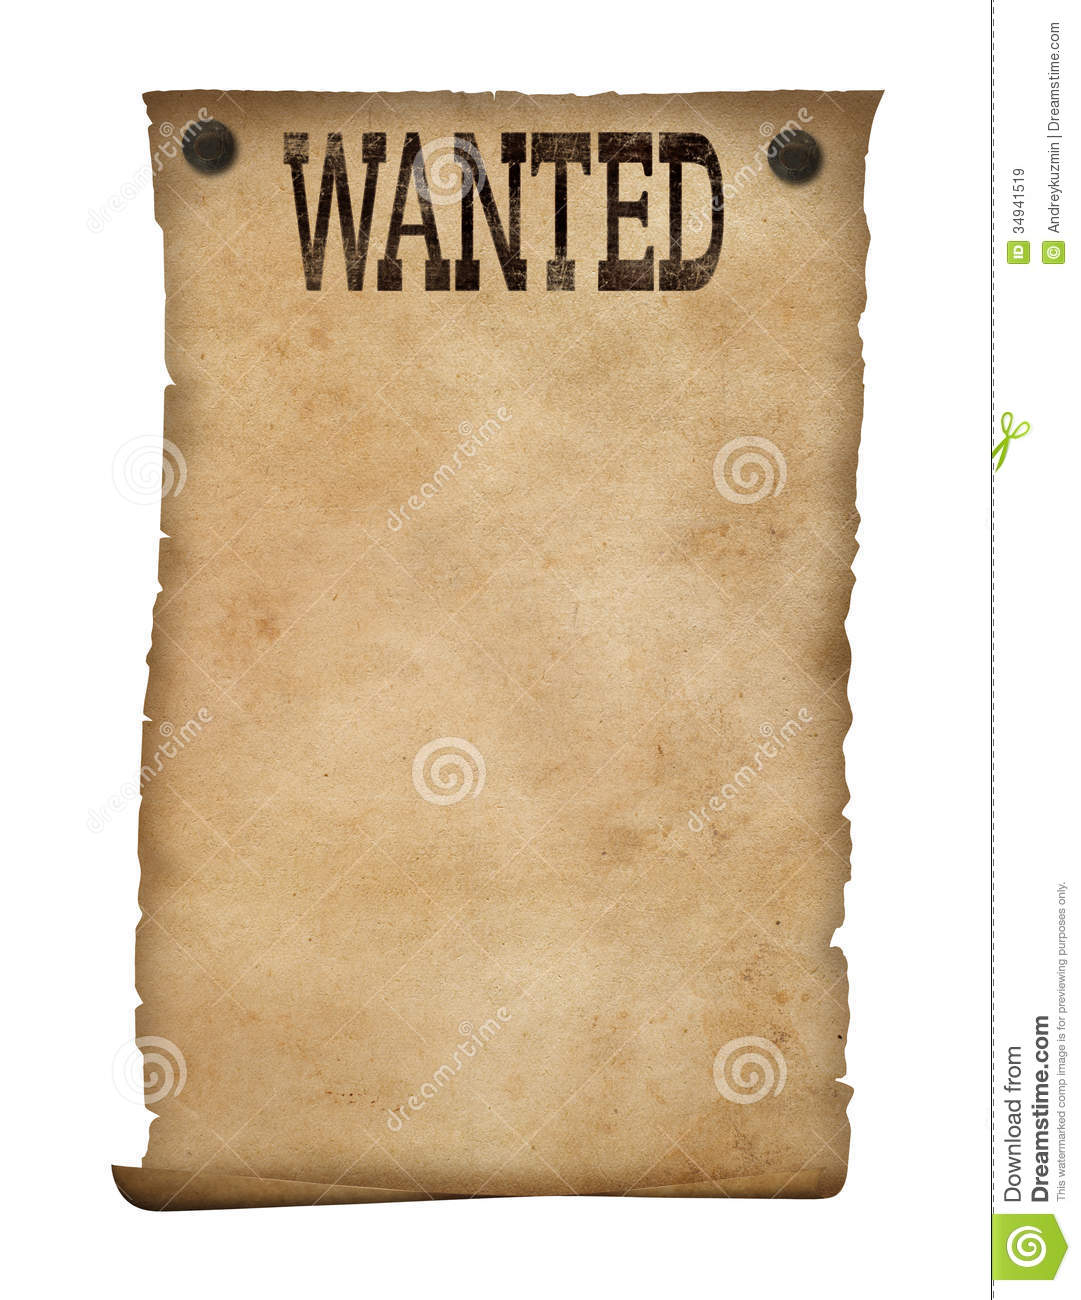 Poster Template  Old Wanted Poster Template Poster Template Wanted Poster  Isolated Wild West Background White  Free Wanted Poster Template Download